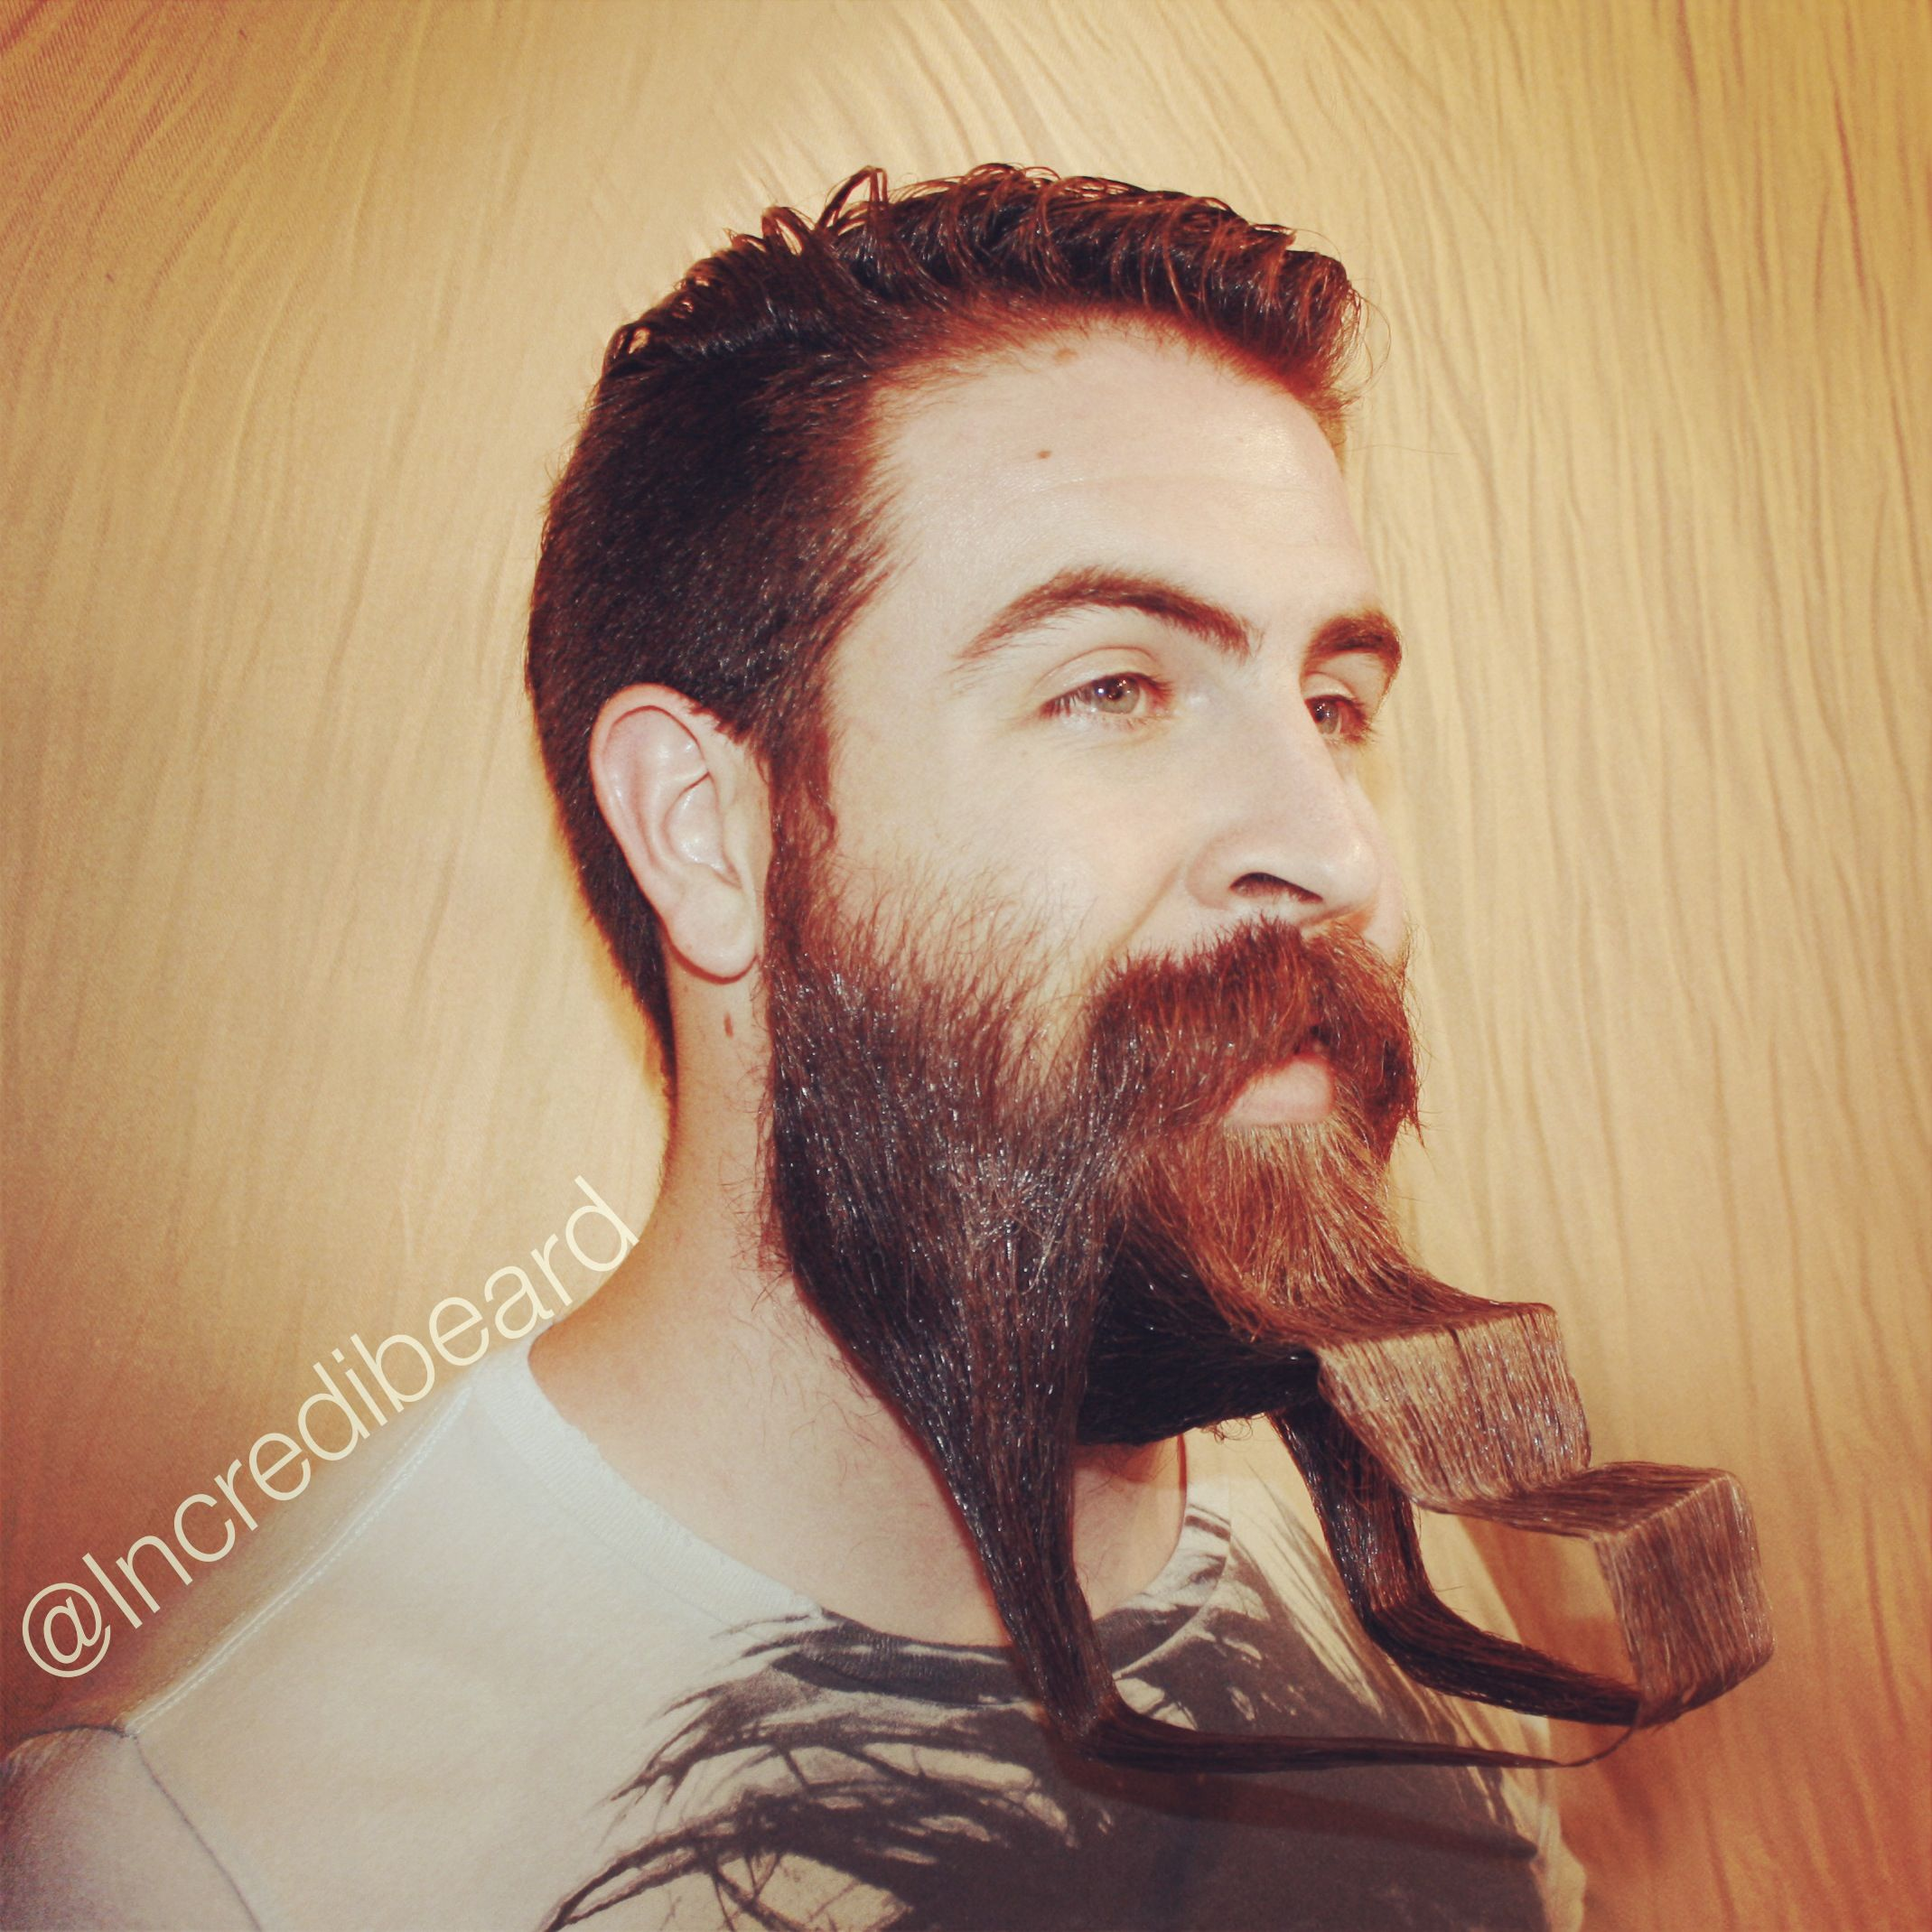 This Weeks Monbeardday Design Is Called Stairway To Heaven Beards - Mr incredibeard really coolest beard ever seen